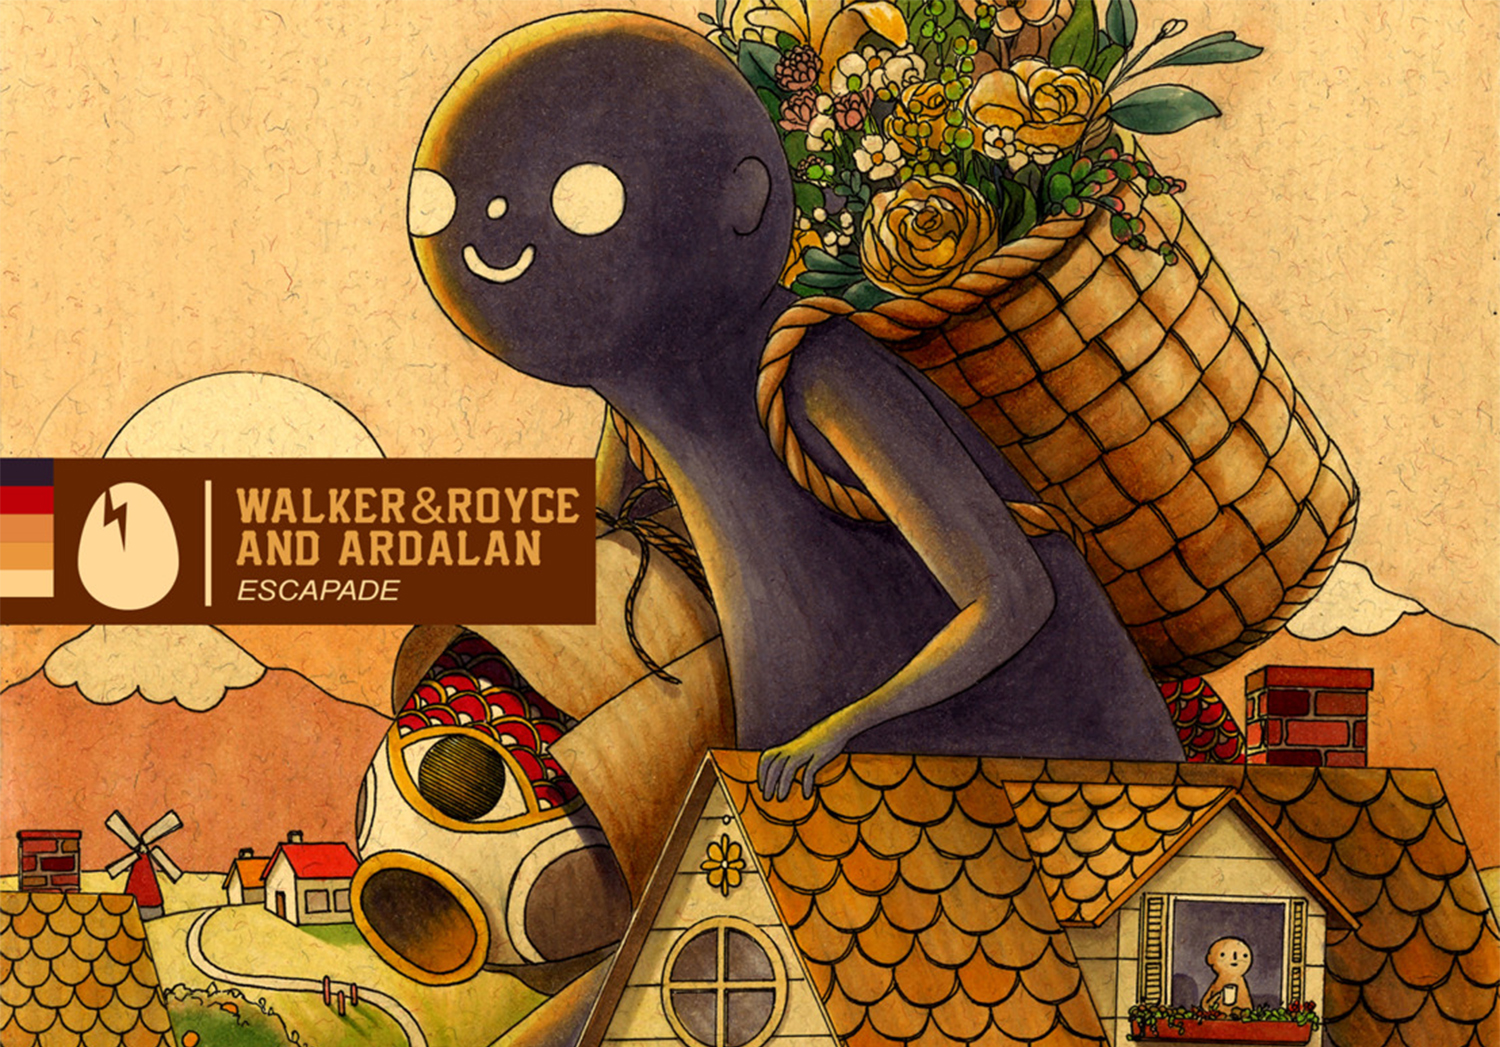 walker & royce escapade